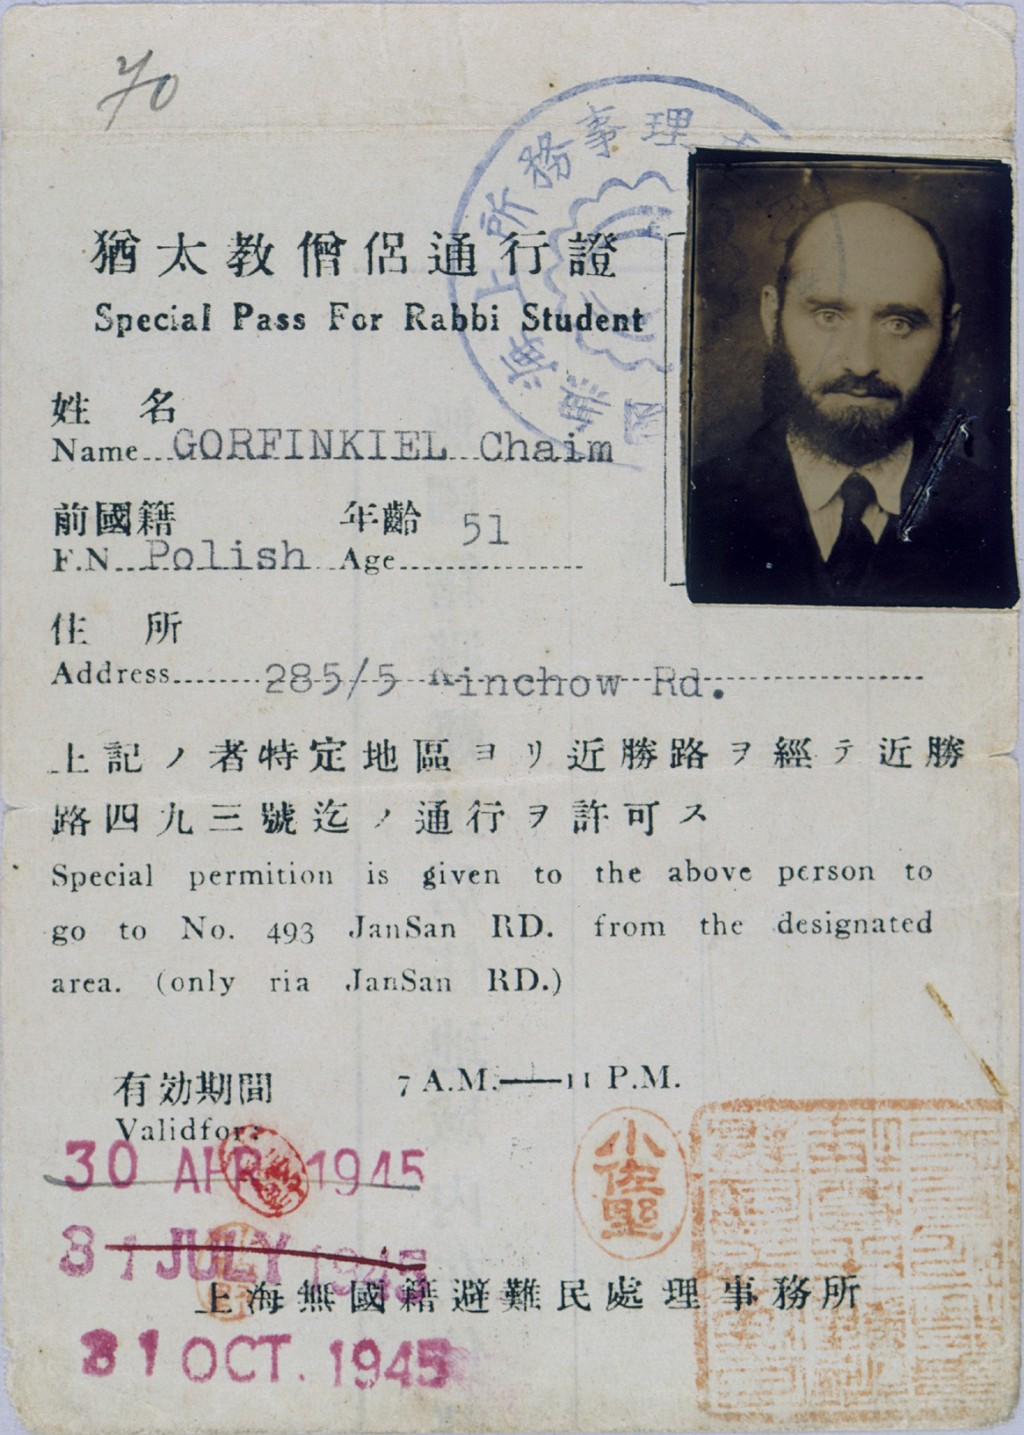 """<p>Special pass issued to rabbinical student Chaim Gorfinkel. Yeshiva students had to obtain special passes from Japanese authorities to leave the """"designated area"""" in order to continue their studies at the Beth Aharon Synagogue, which was located outside the zone. [From the USHMM special exhibition Flight and Rescue.]</p>"""